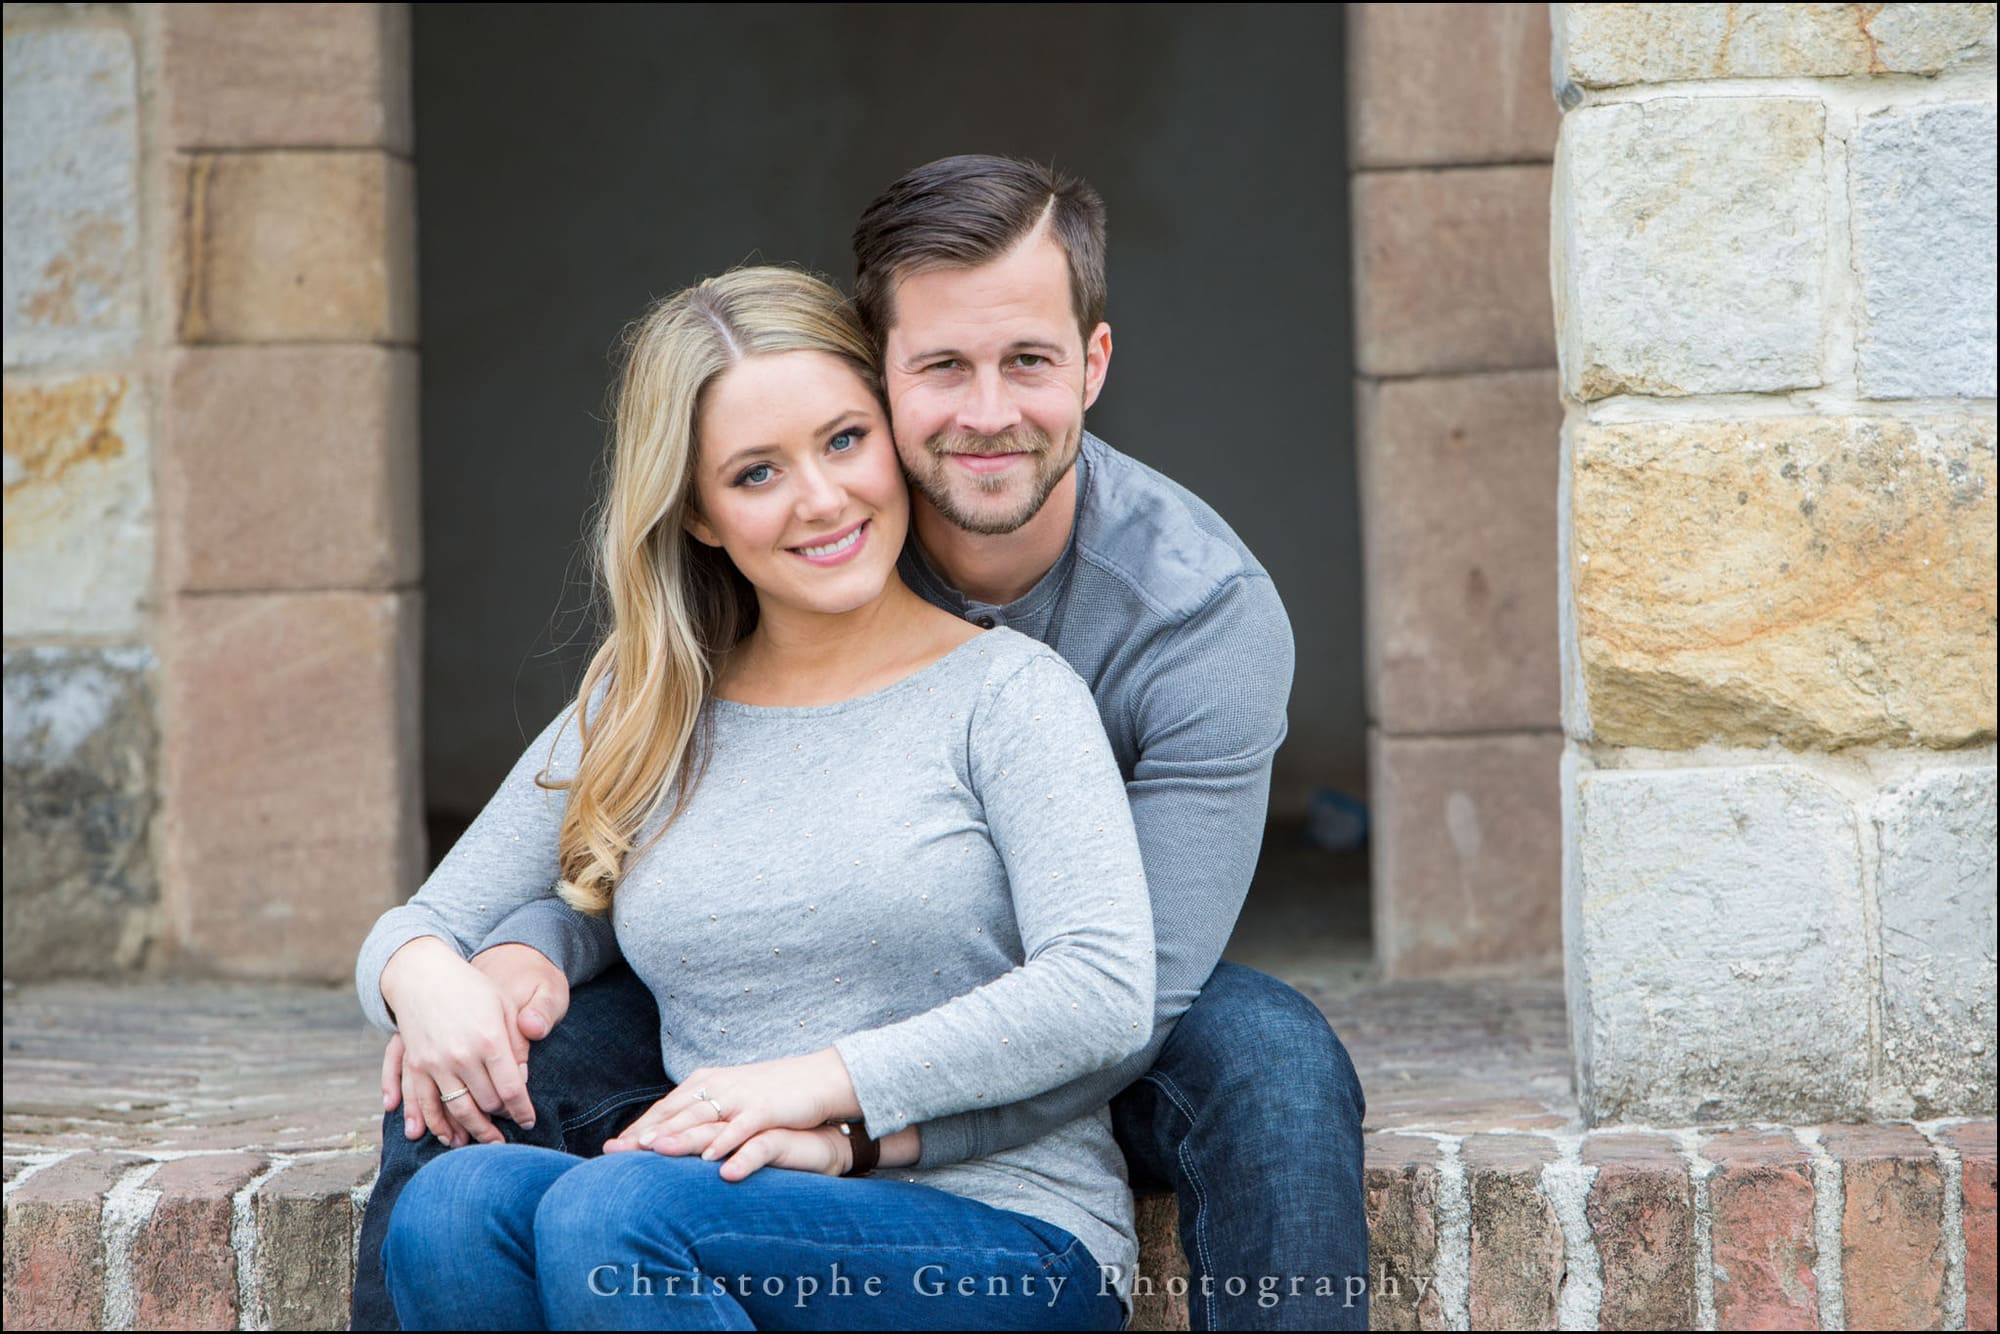 Engagement Photography at the Castello di Amorosa - Calistoga, CA